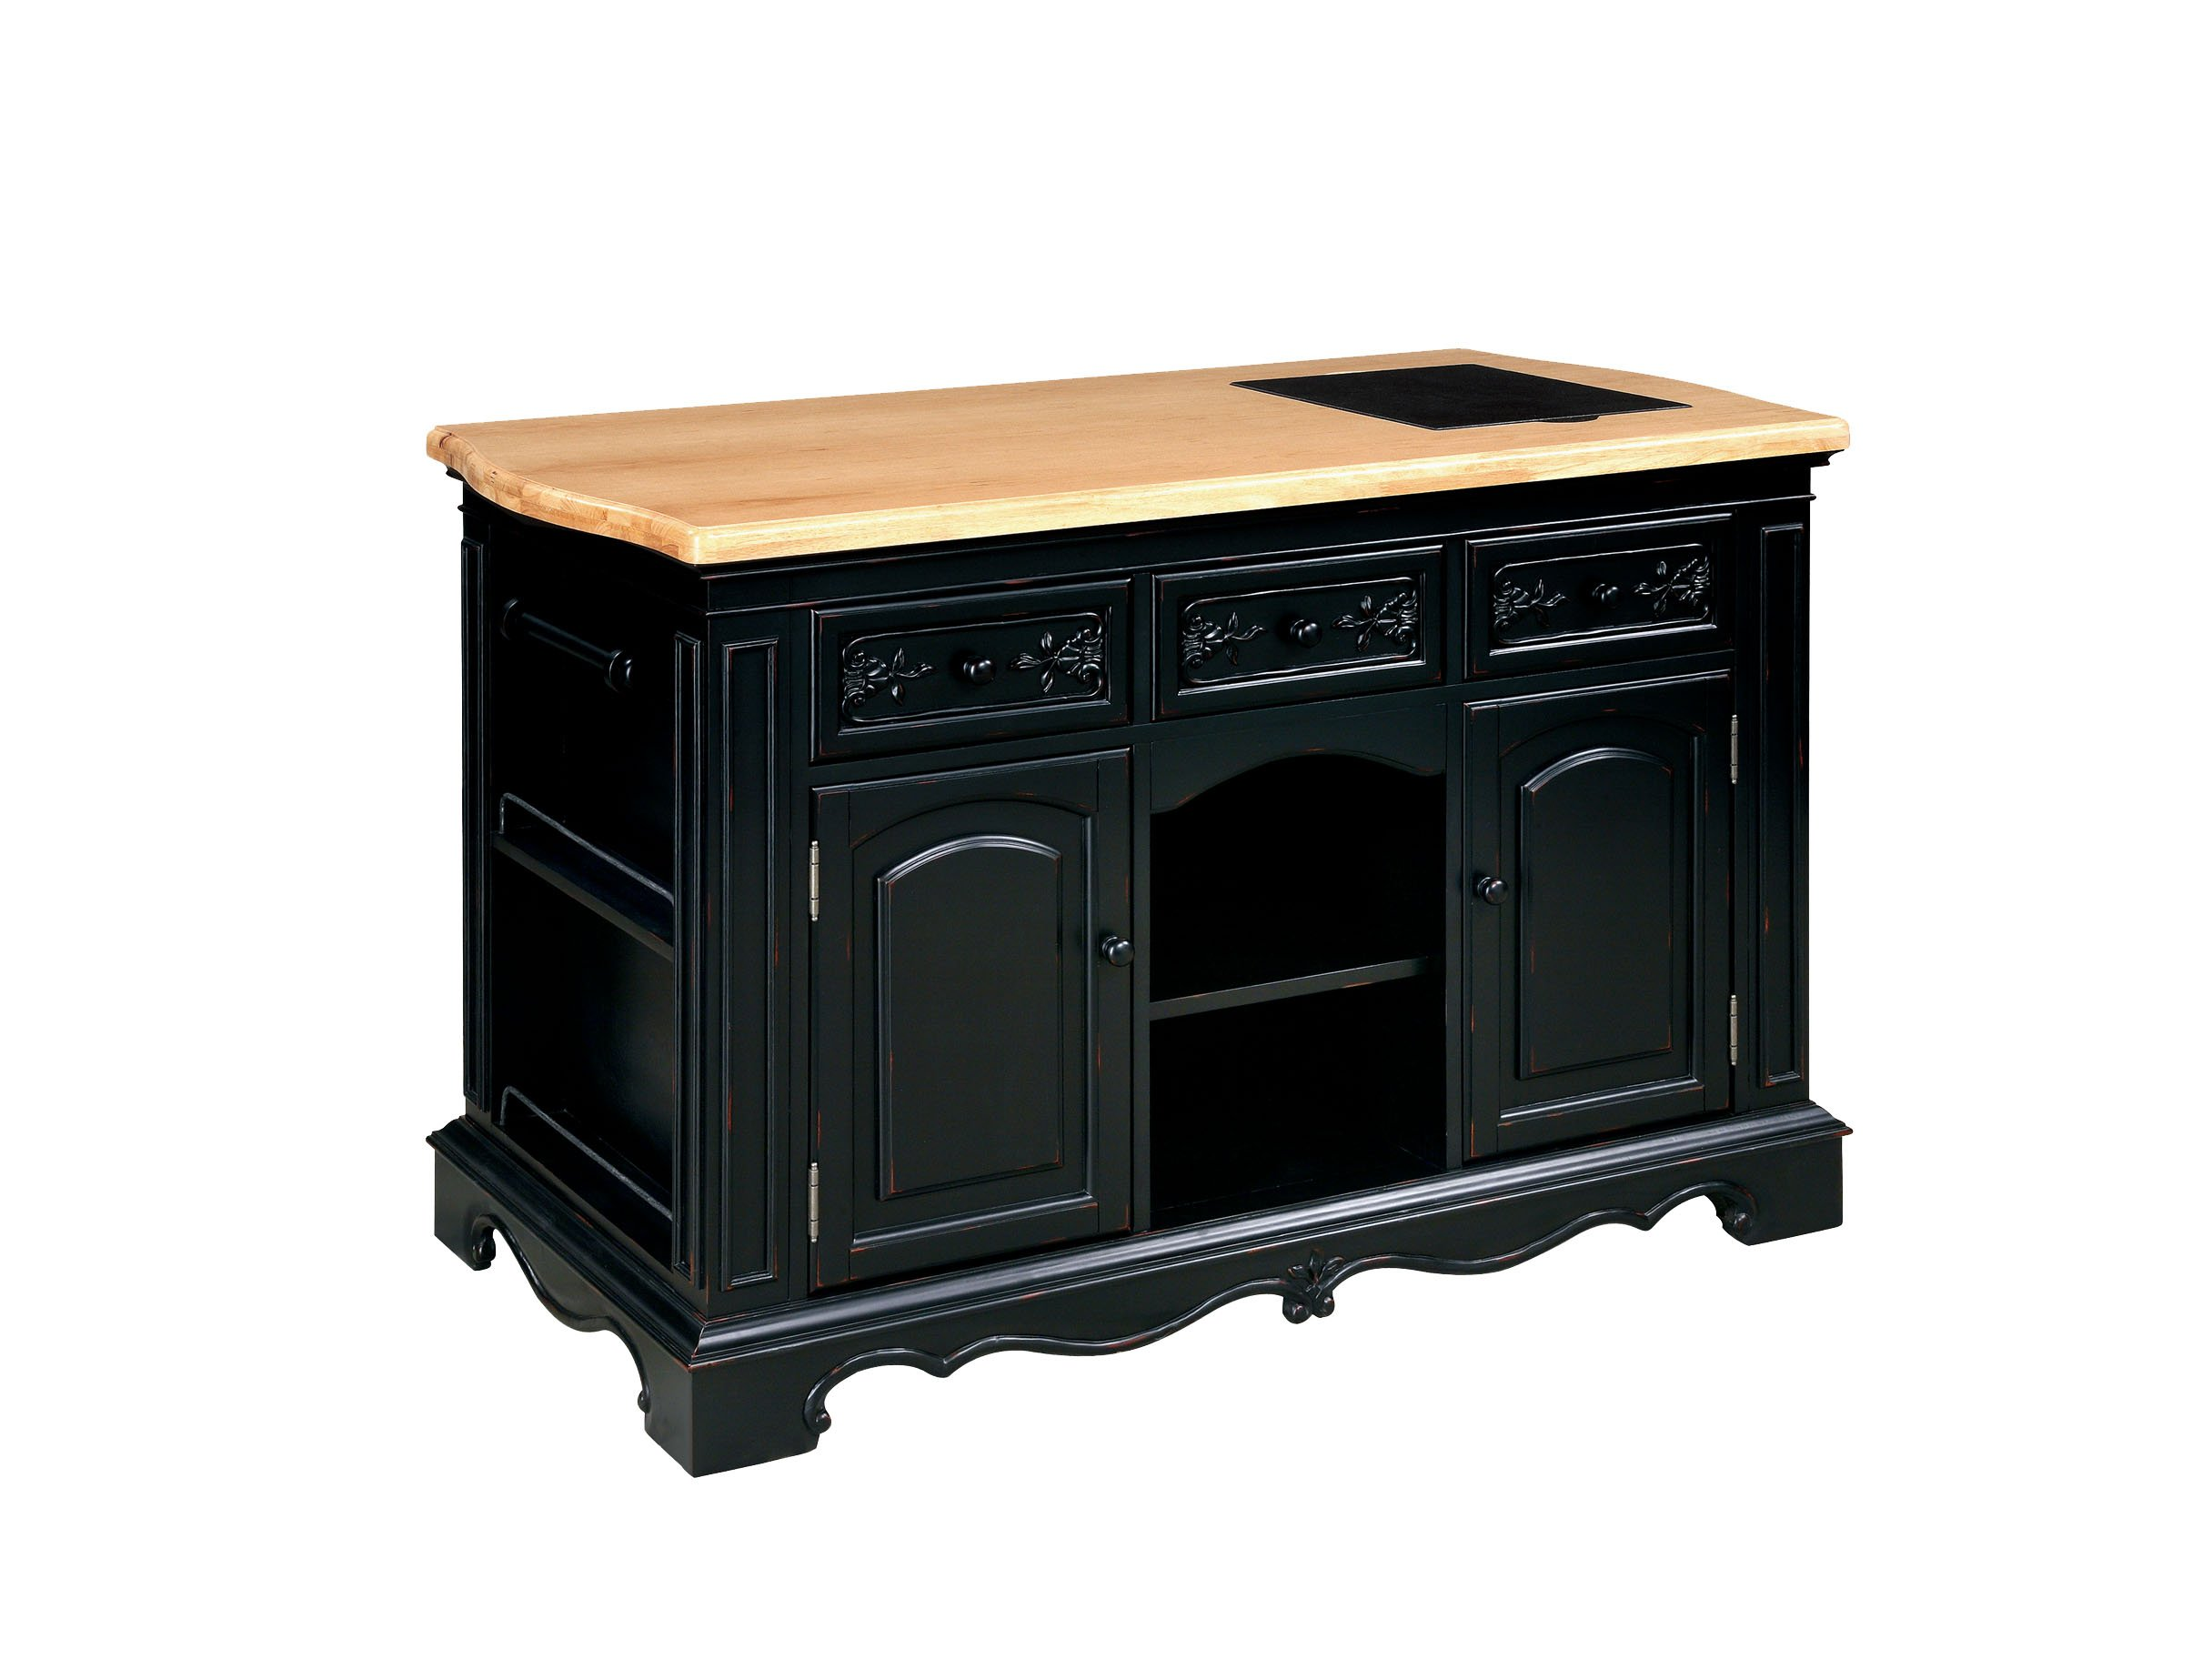 powell pennfield kitchen island counter stool powell pennfield kitchen island black 27392